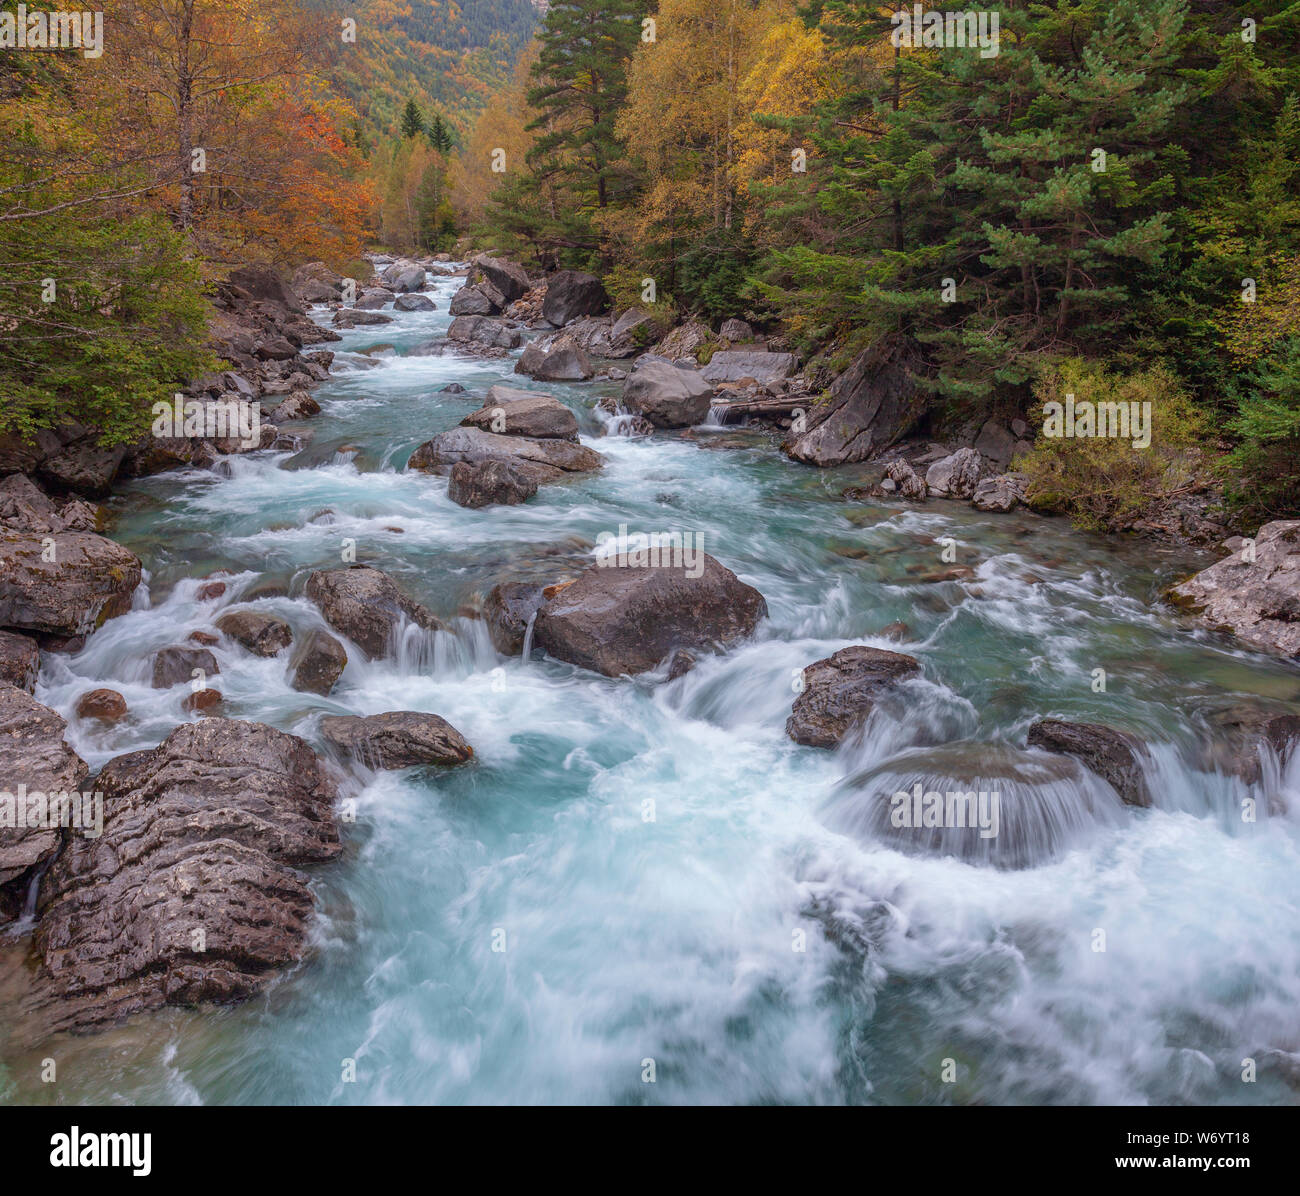 National park of Ordesa y Monte perdido. Autumn season. Stock Photo